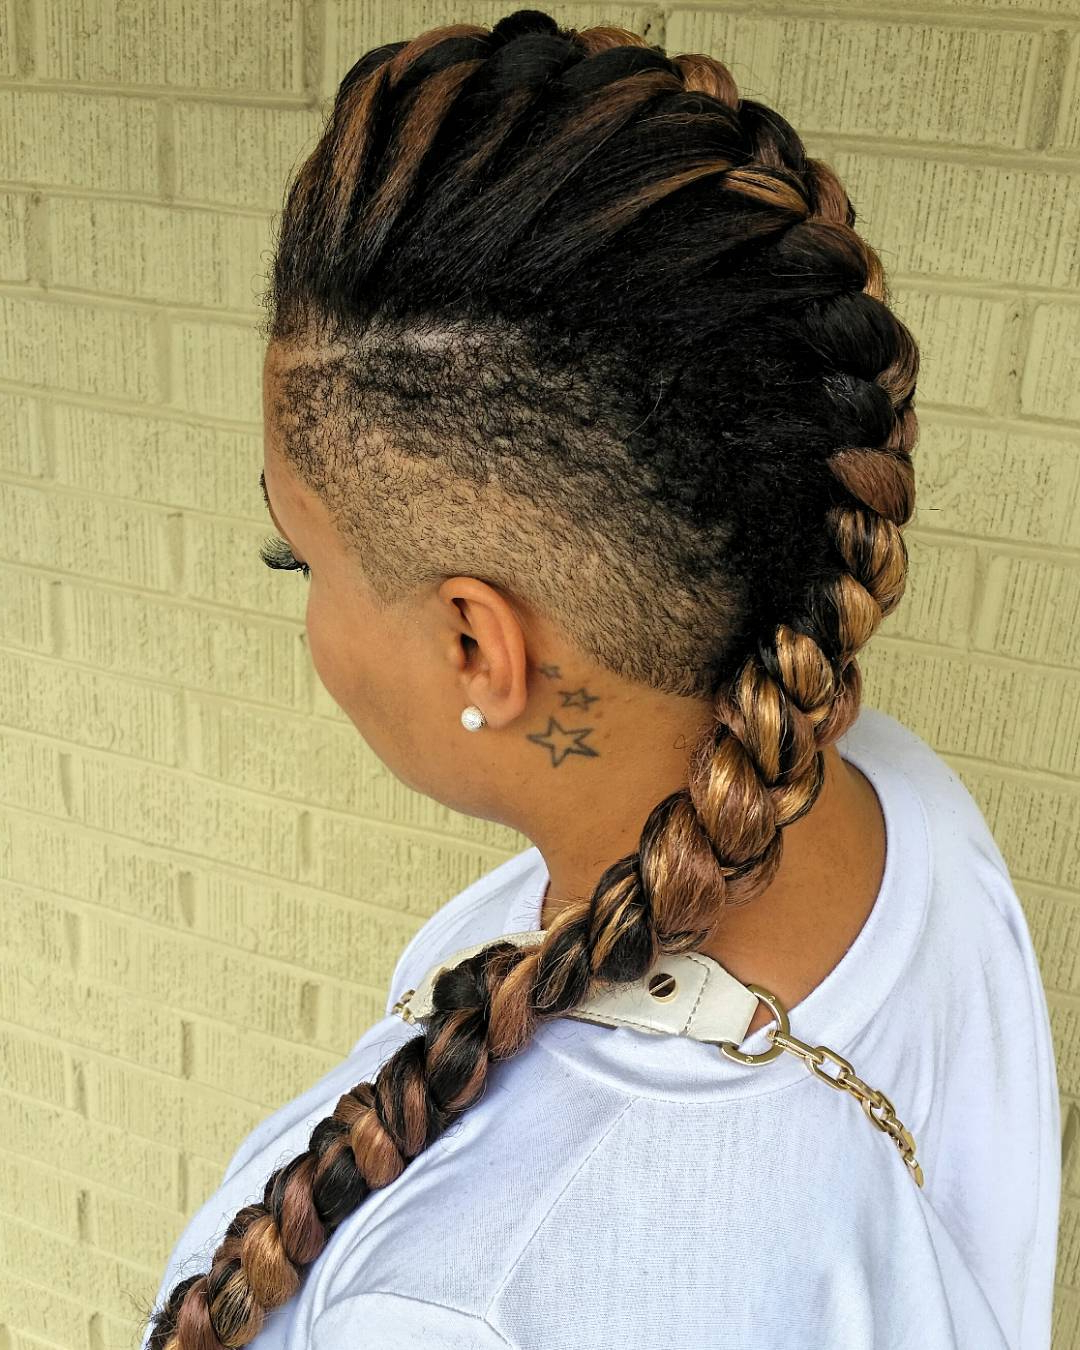 Current Braided Frohawk Hairstyles Inside Mohawk Braids: 12 Braided Mohawk Hairstyles That Get Attention (View 5 of 20)